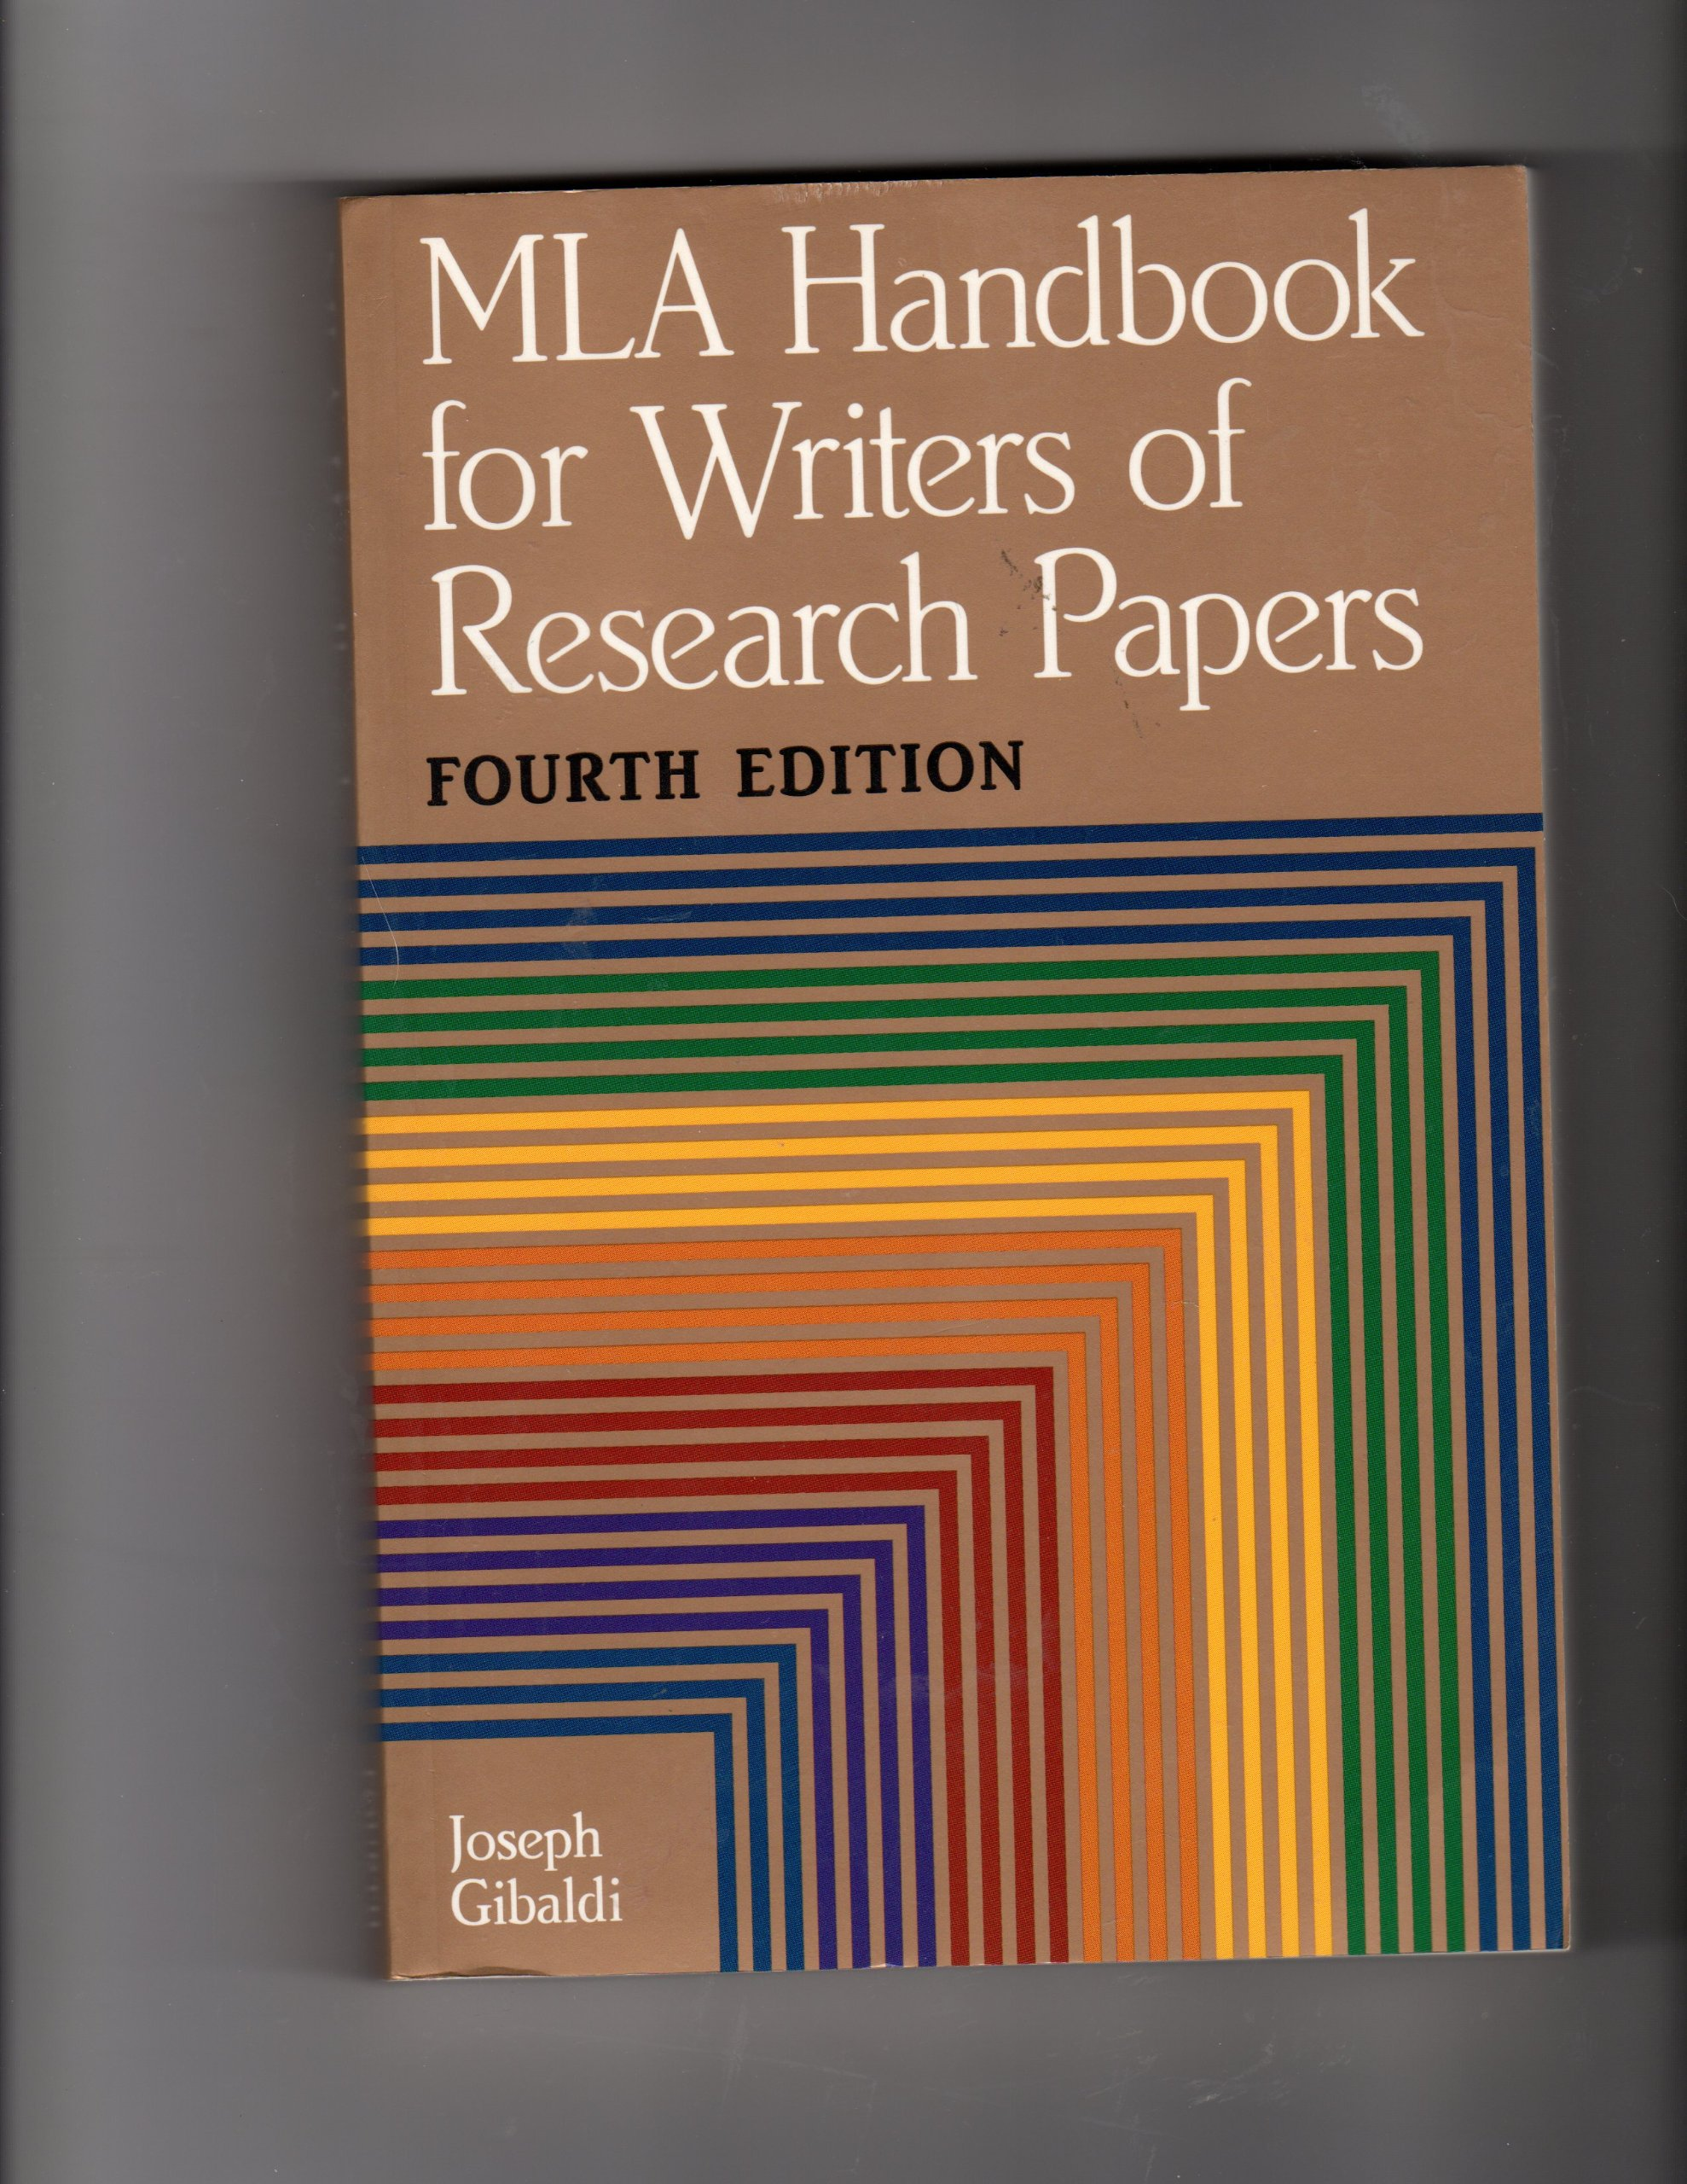 002 91or7esc2gl Research Paper Mla Handbook For Writers Of Papers 8th Unique Edition Pdf Free Download Full